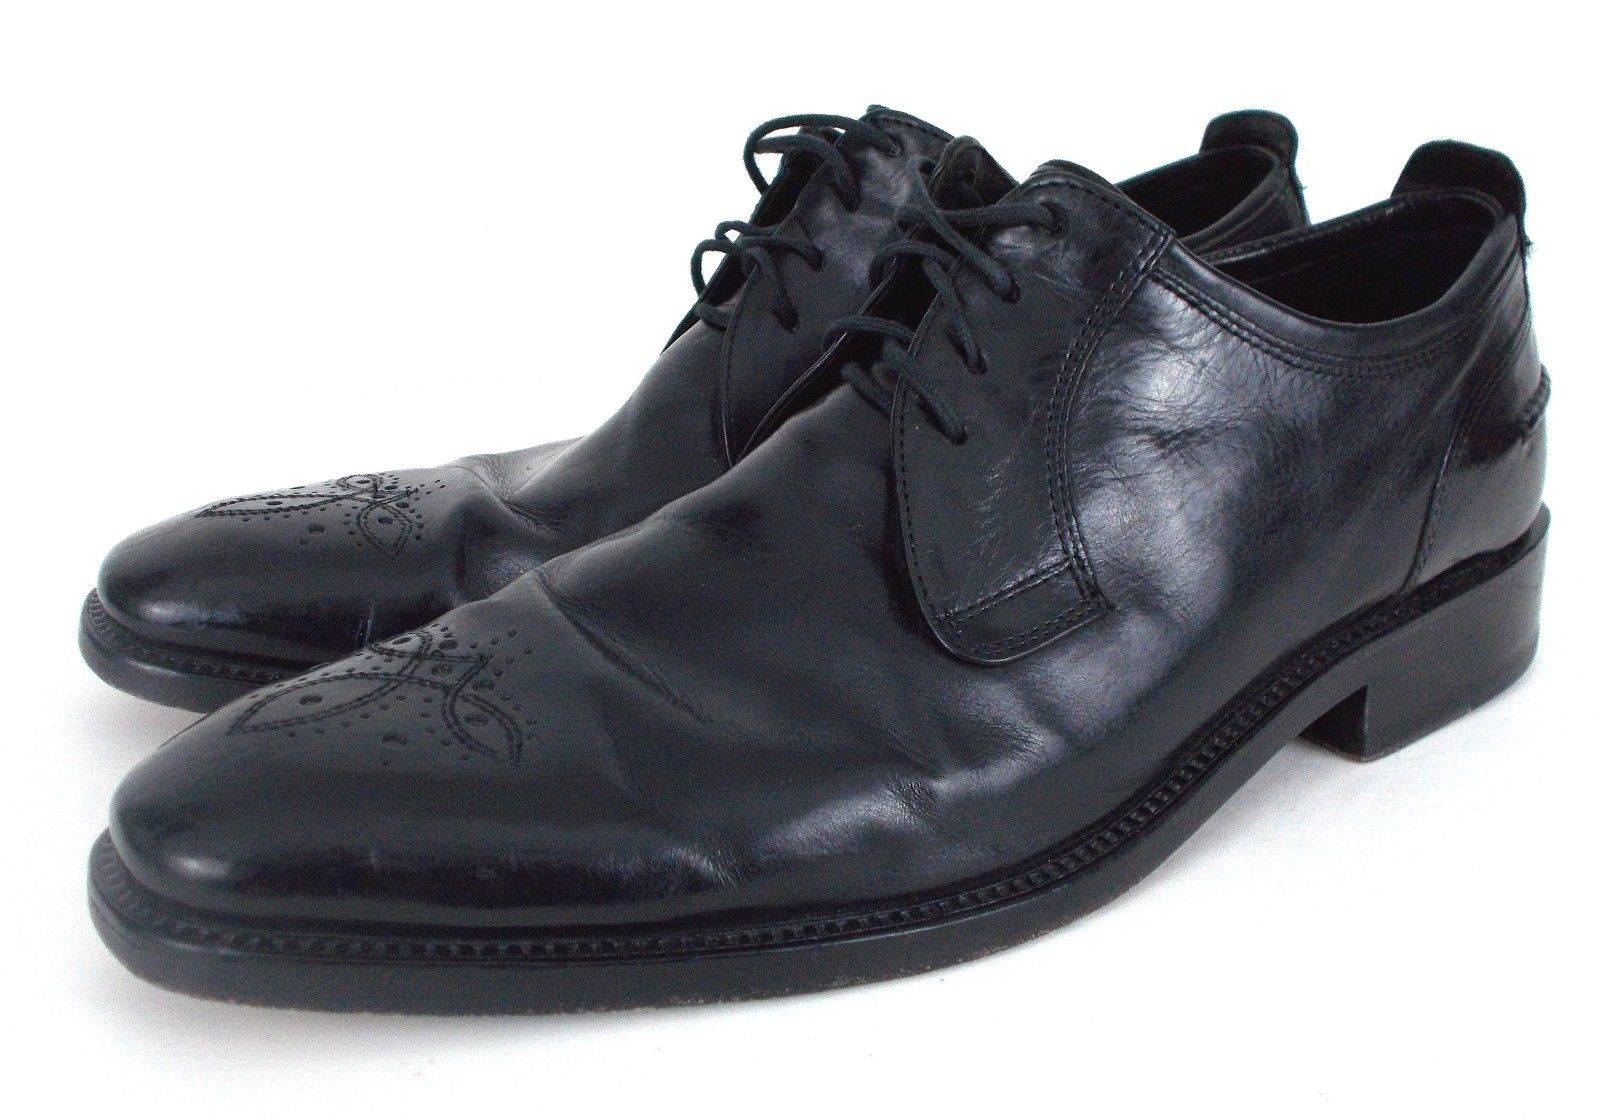 After eBay and paypal fee's I received $4.00. cole haan black